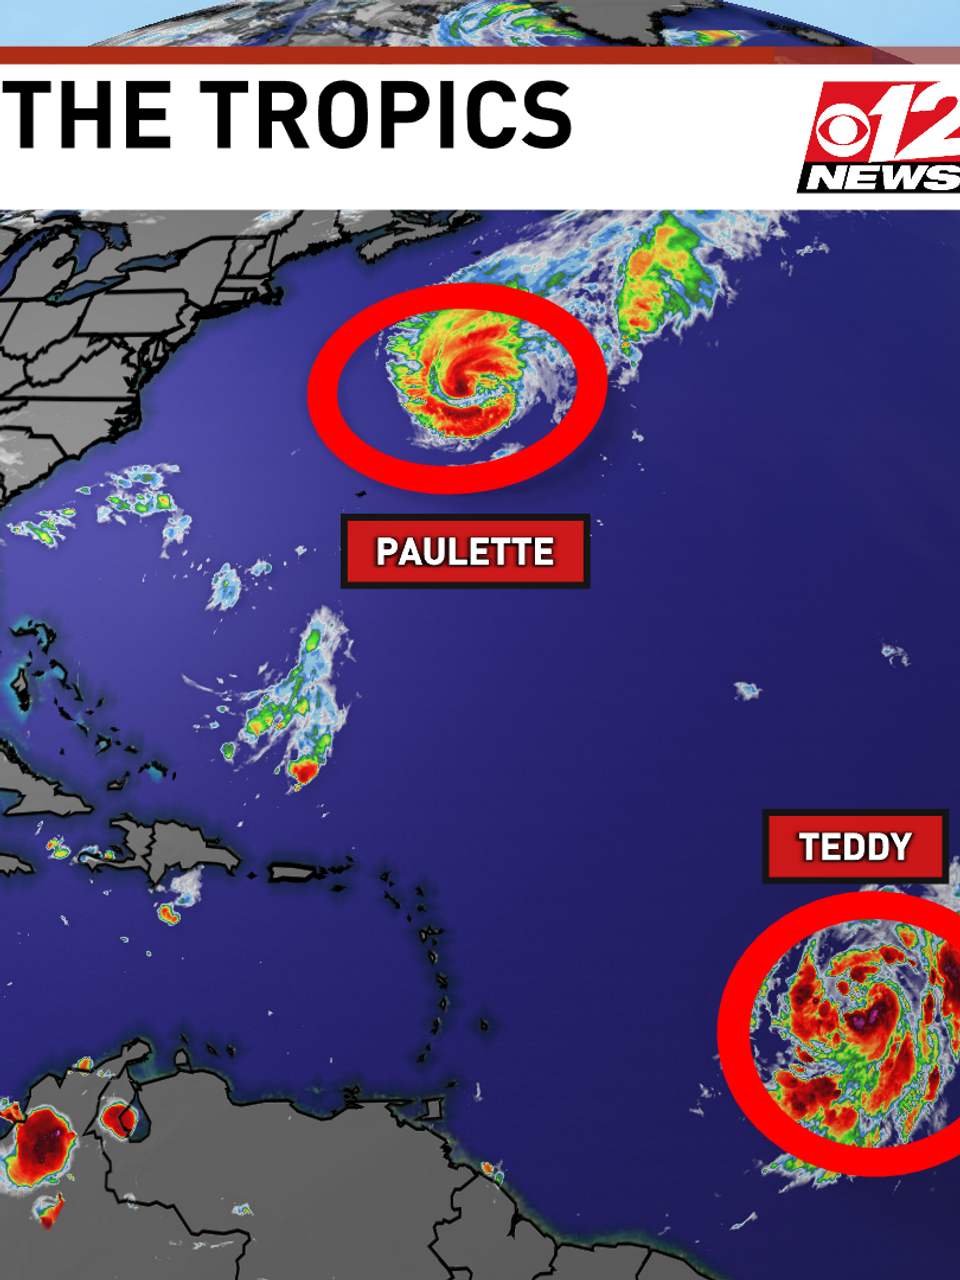 Hurricane Sally To Stay A Cat 1 Tracking 3 Tropical Storms Wpec